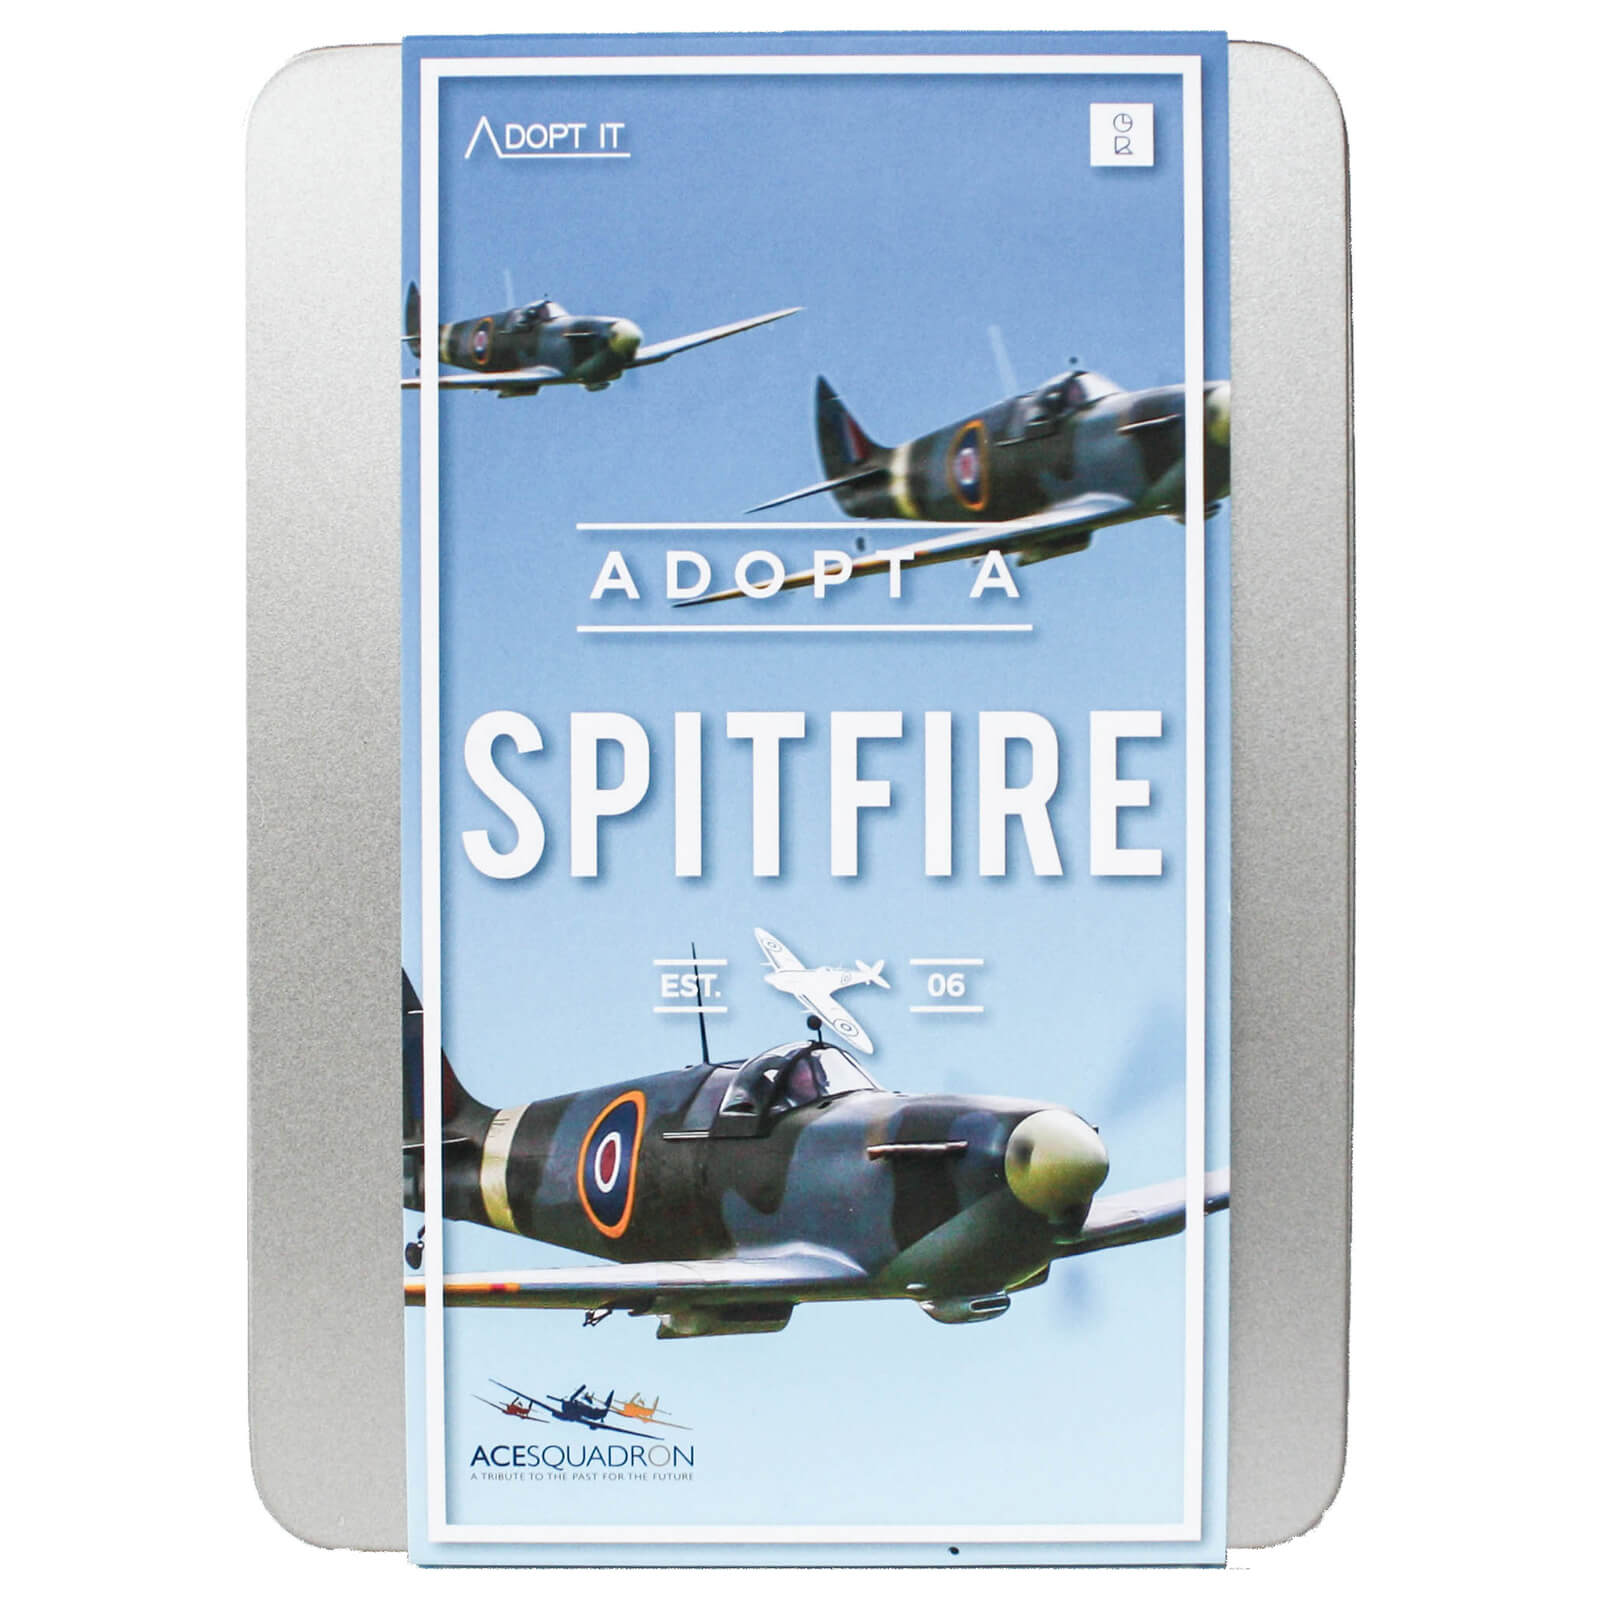 Image of Adopt a Spitfire